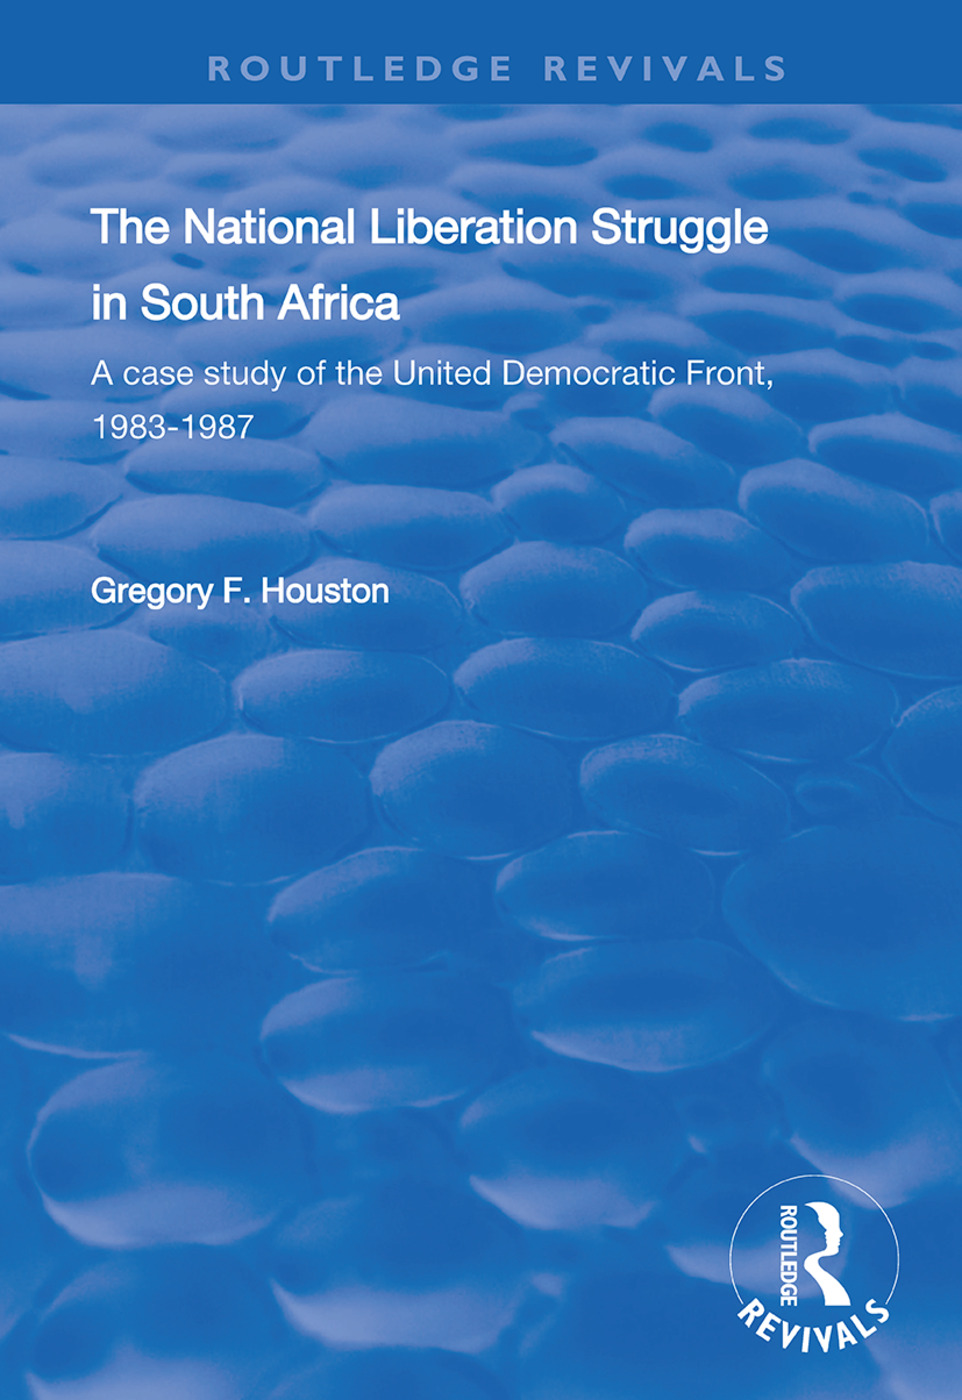 The National Liberation Struggle in South Africa: A Case Study of the United Democratic Front, 1983-87 book cover